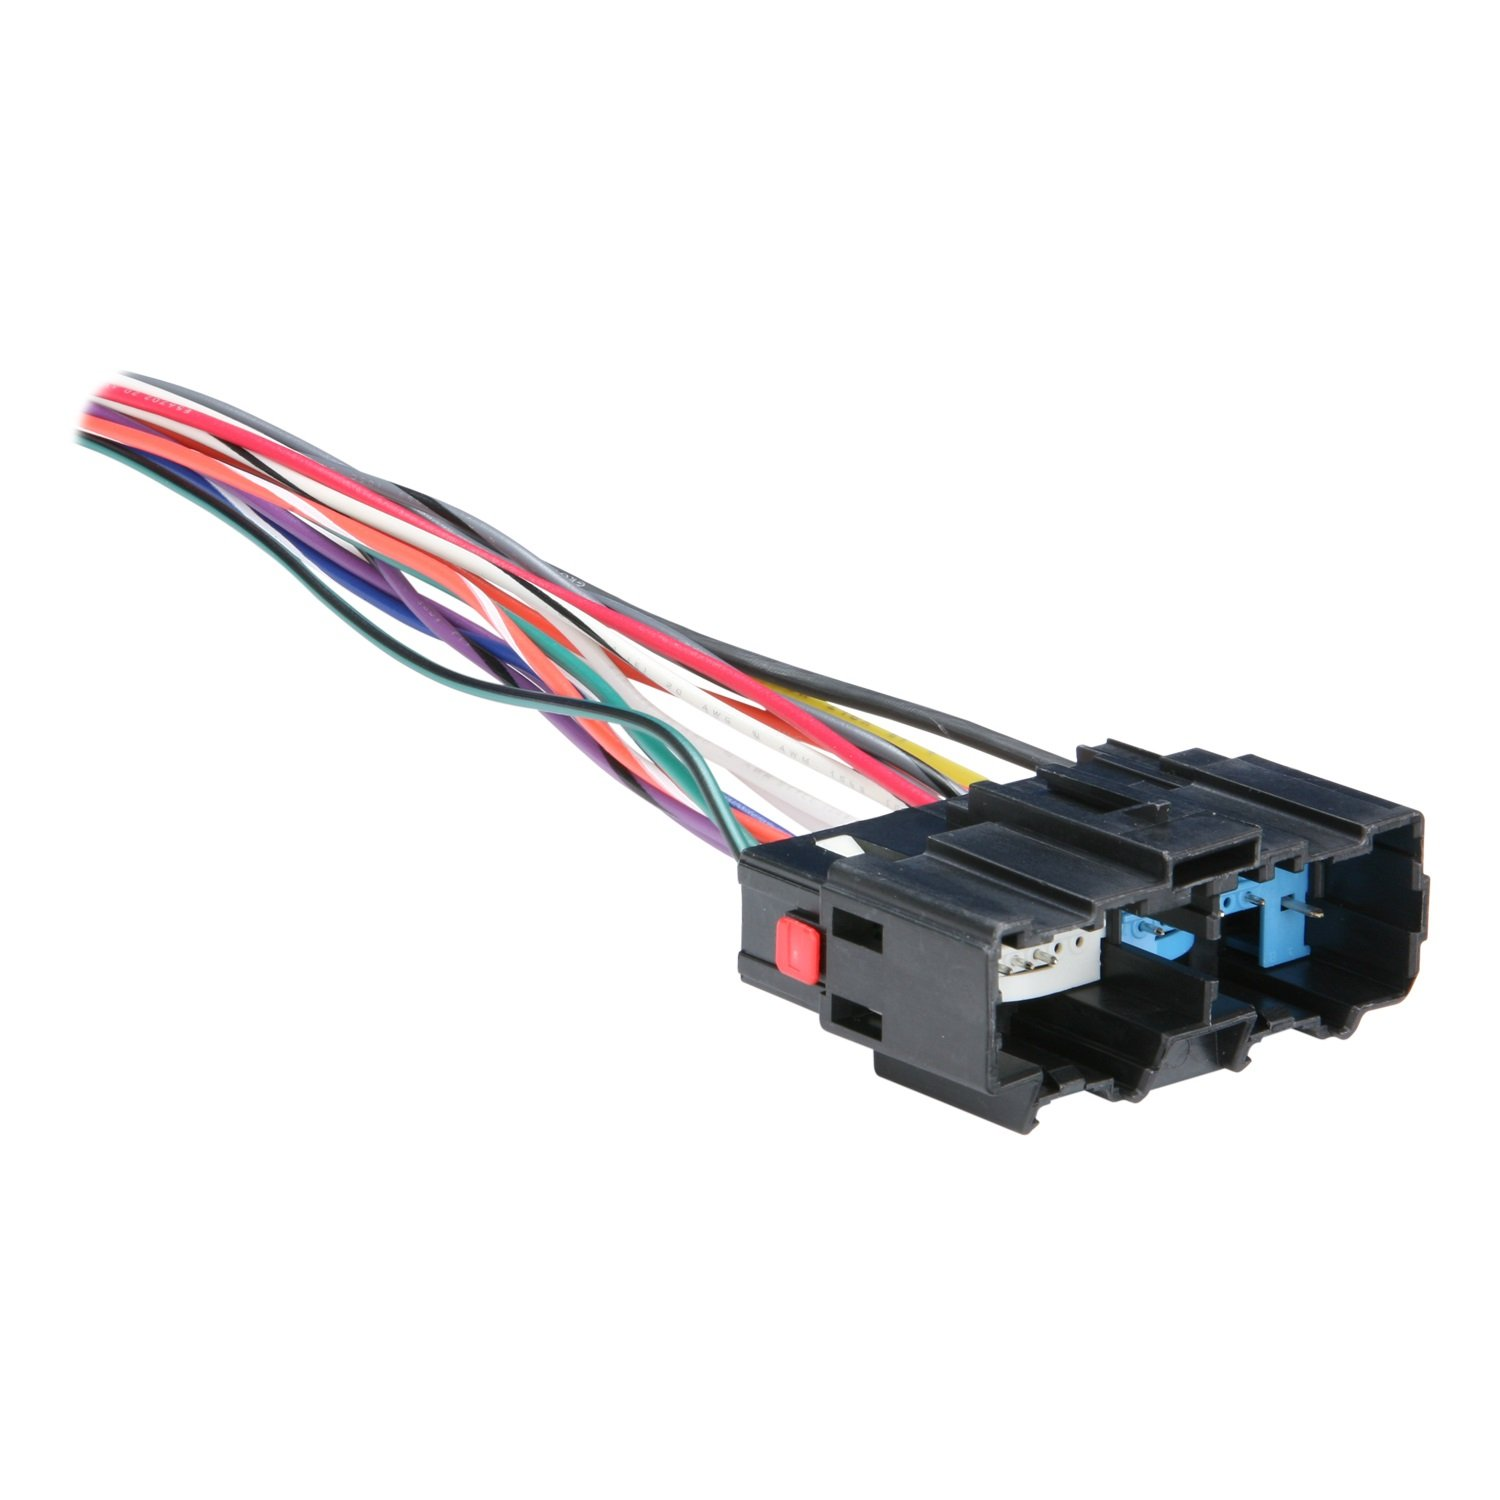 61X8Wt81itL._SL1500_ amazon com metra 70 2202 wiring harness for 2006 saturn vue ion  at webbmarketing.co